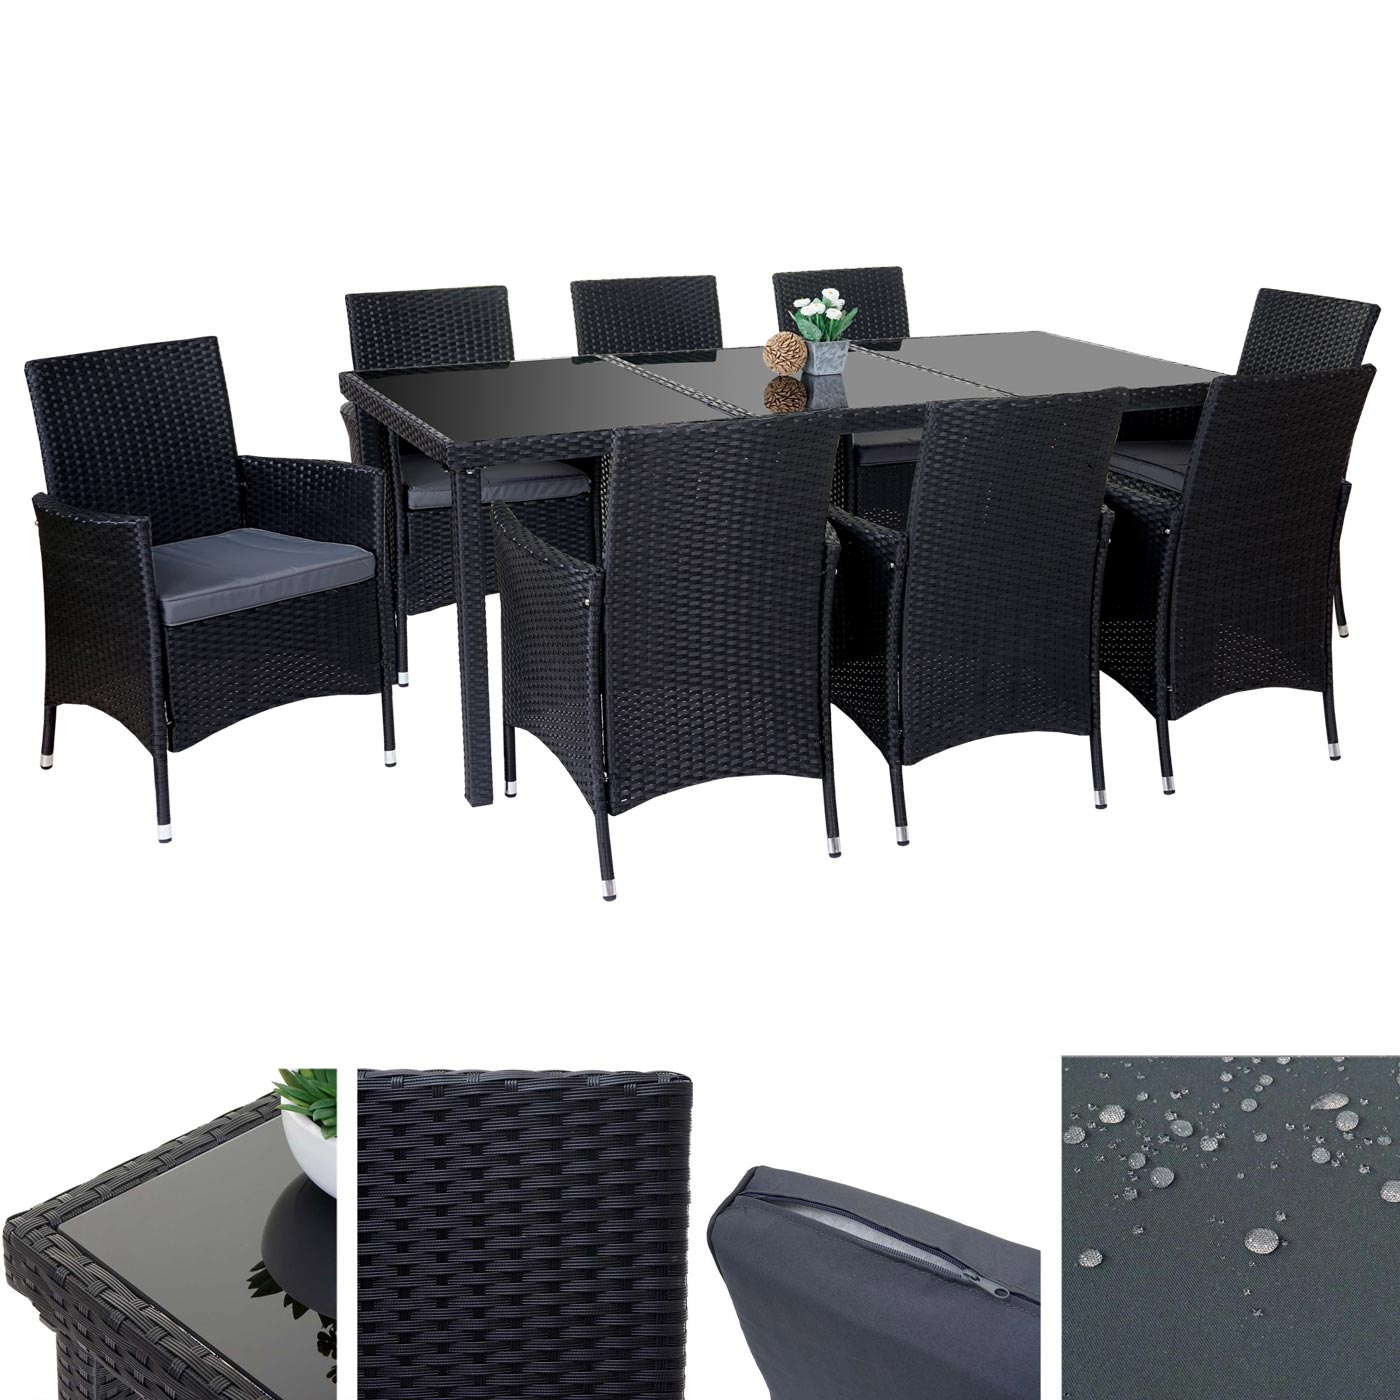 poly rattan garnitur terni garten sitzgruppe tisch 8 sessel alu anthrazit kissen grau. Black Bedroom Furniture Sets. Home Design Ideas